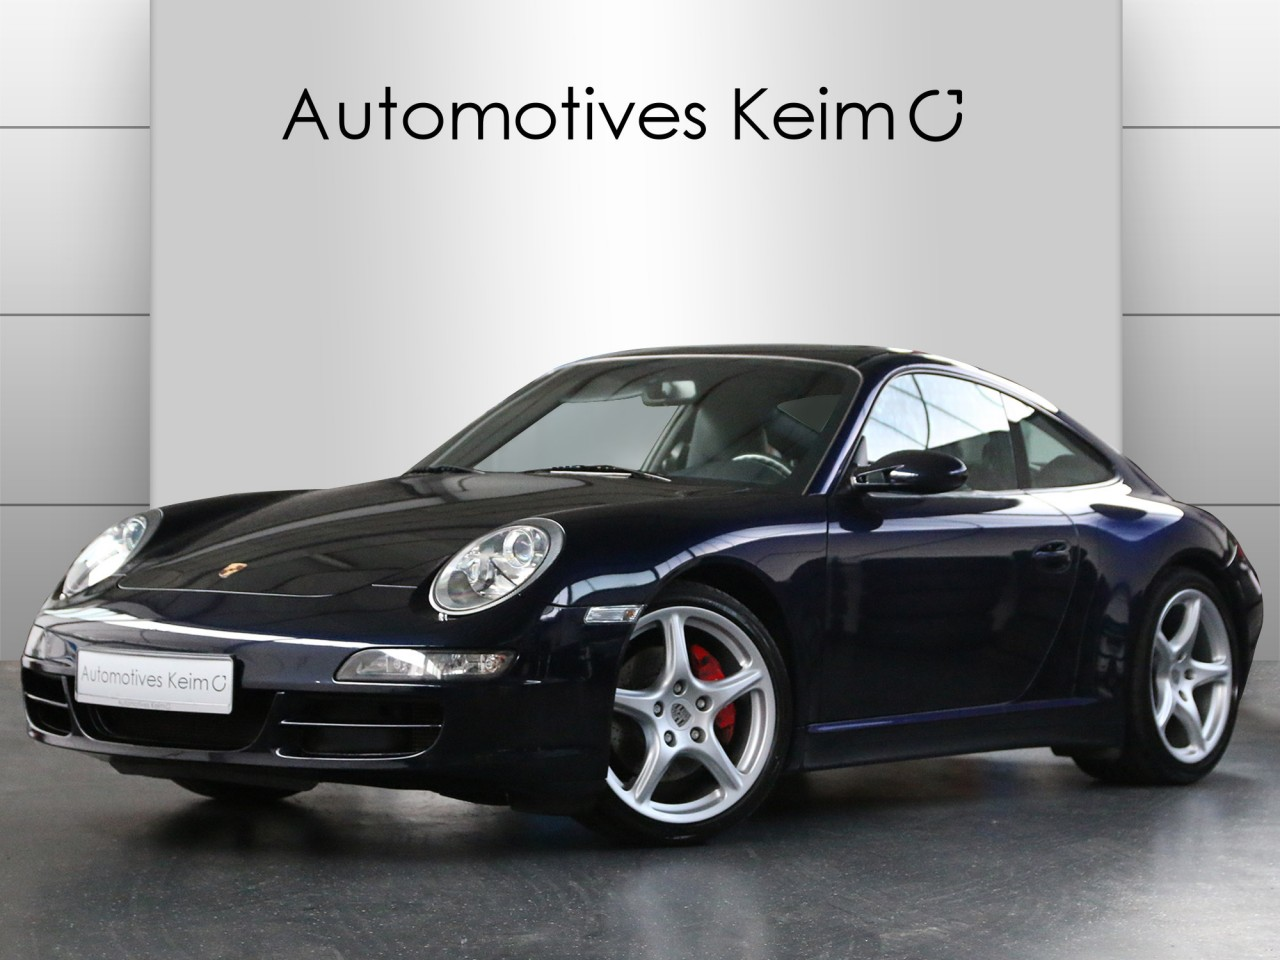 PORSCHE_911_997_Automotives_Keim_GmbH_63500_Seligenstadt_www.automotives-keim.de_oliver_keim_000134